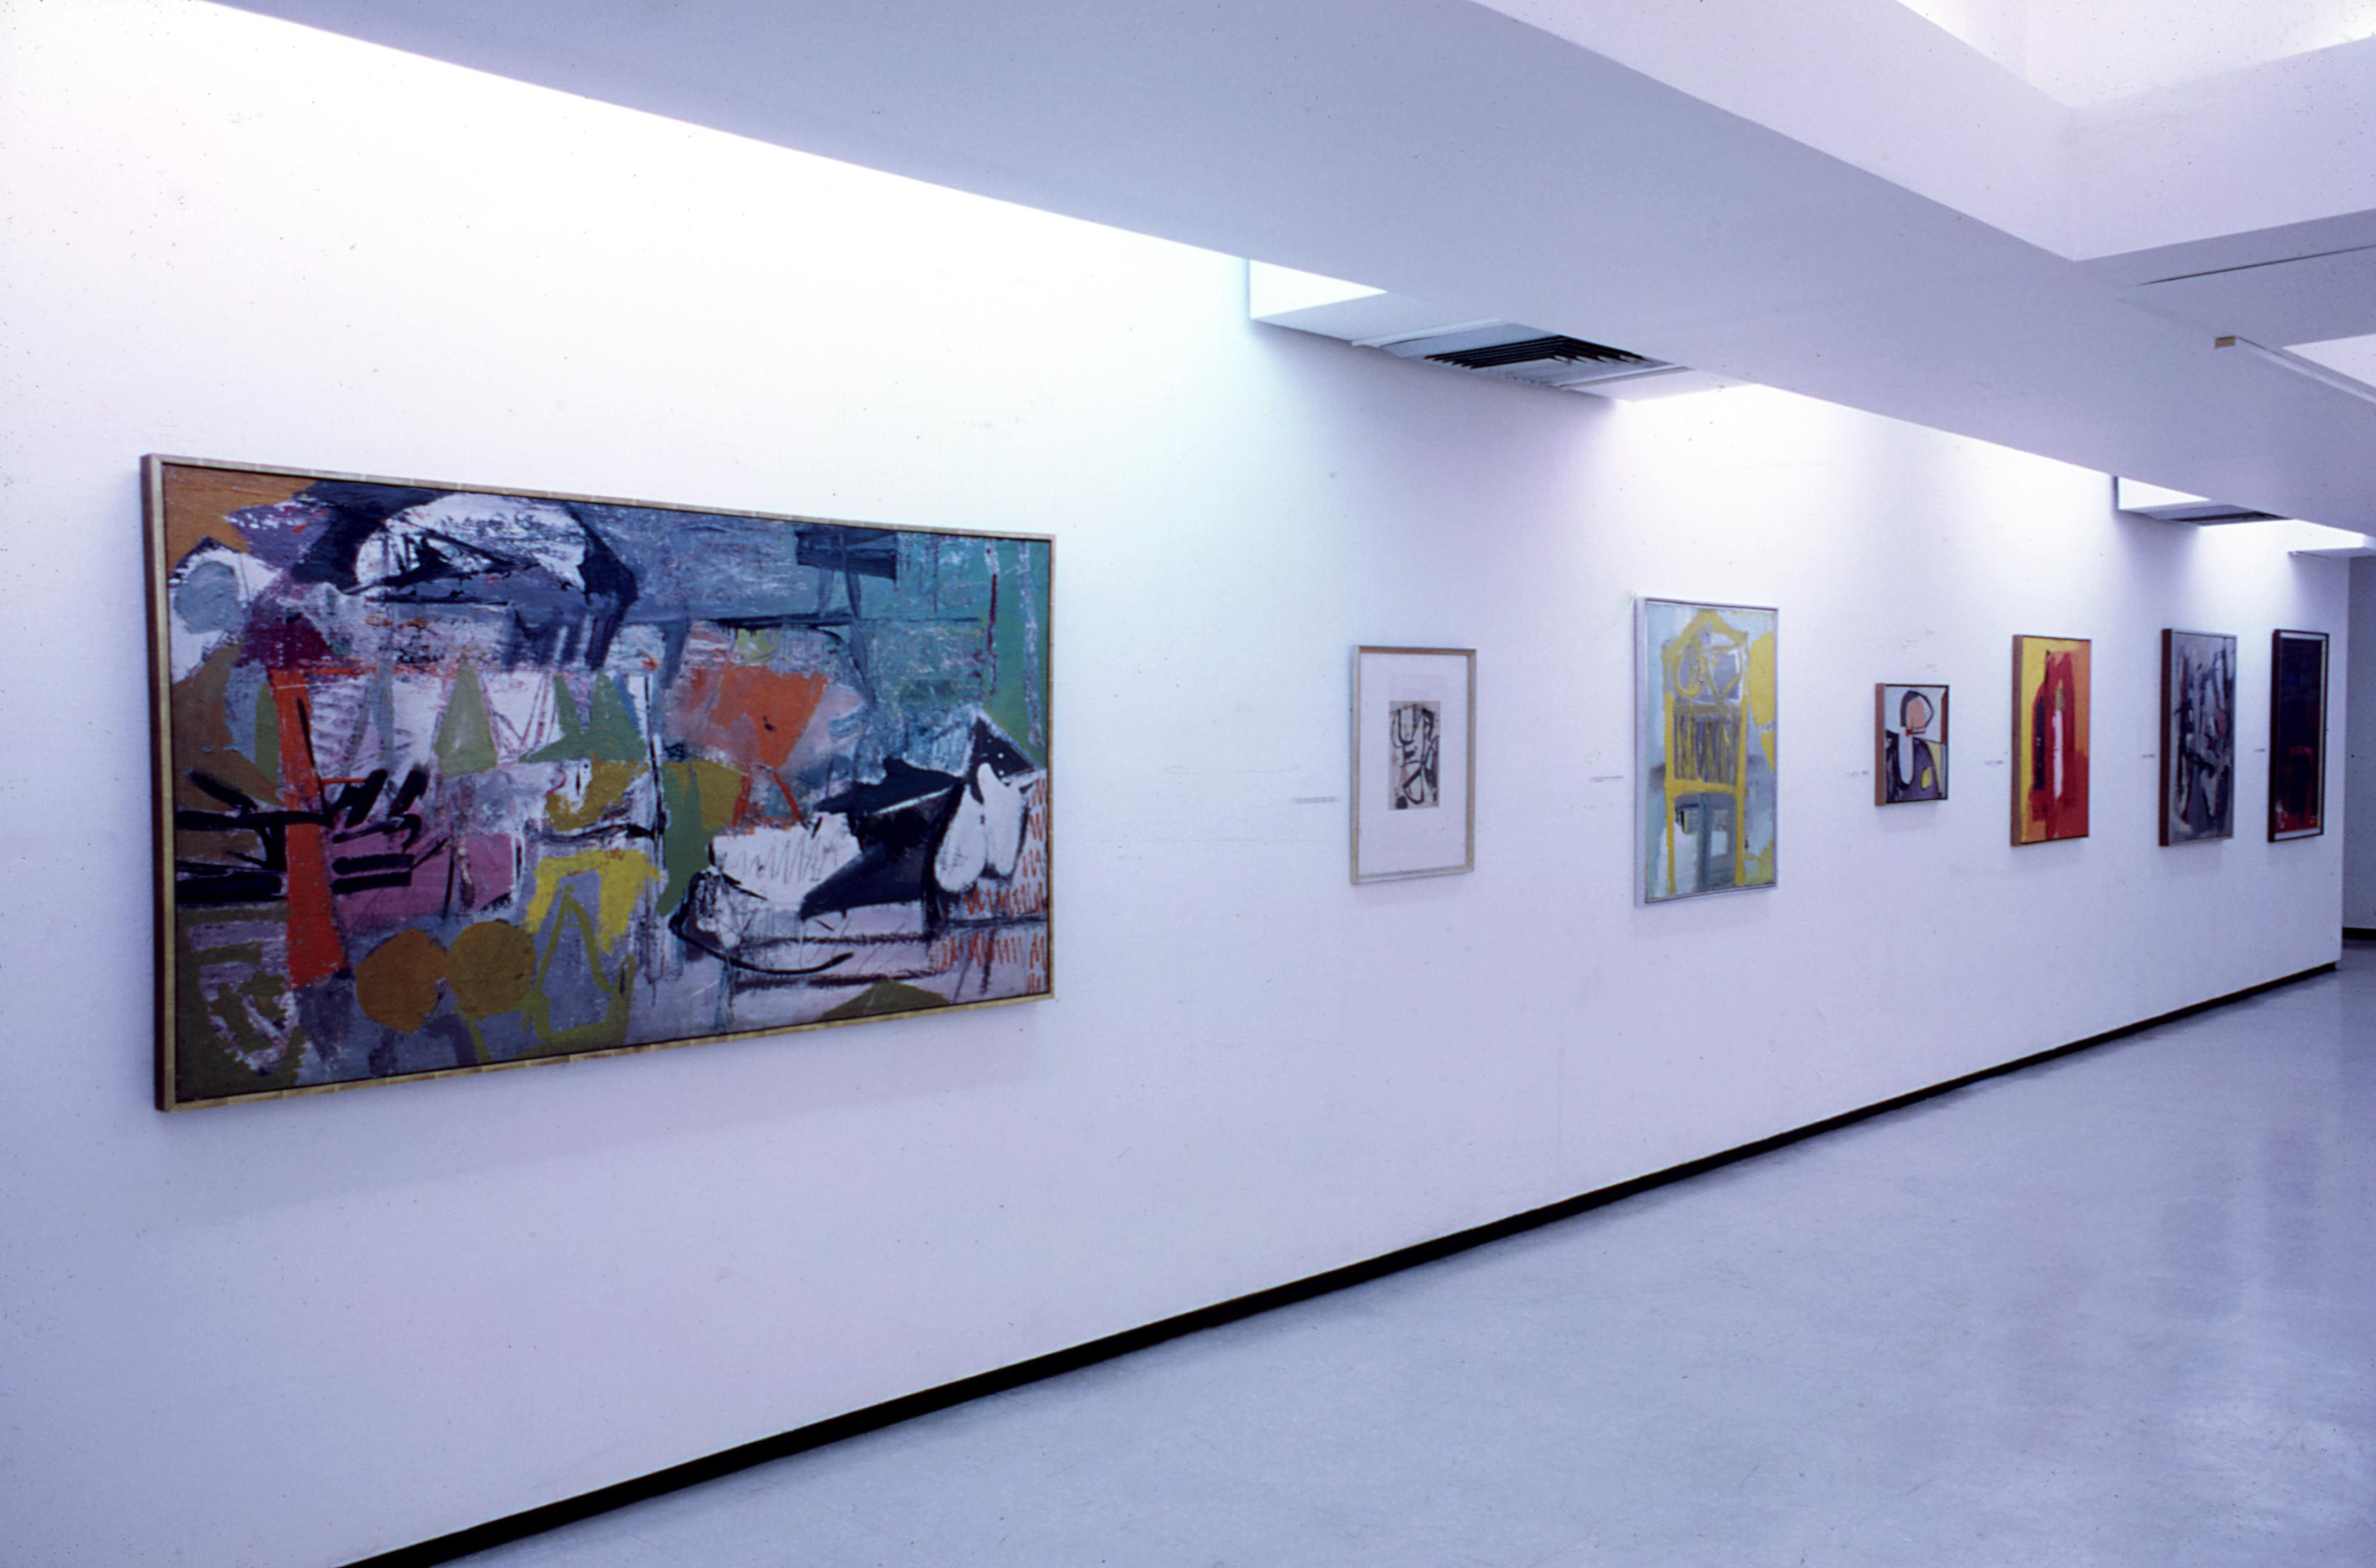 Many colorful paintings hang along a gallery wall.